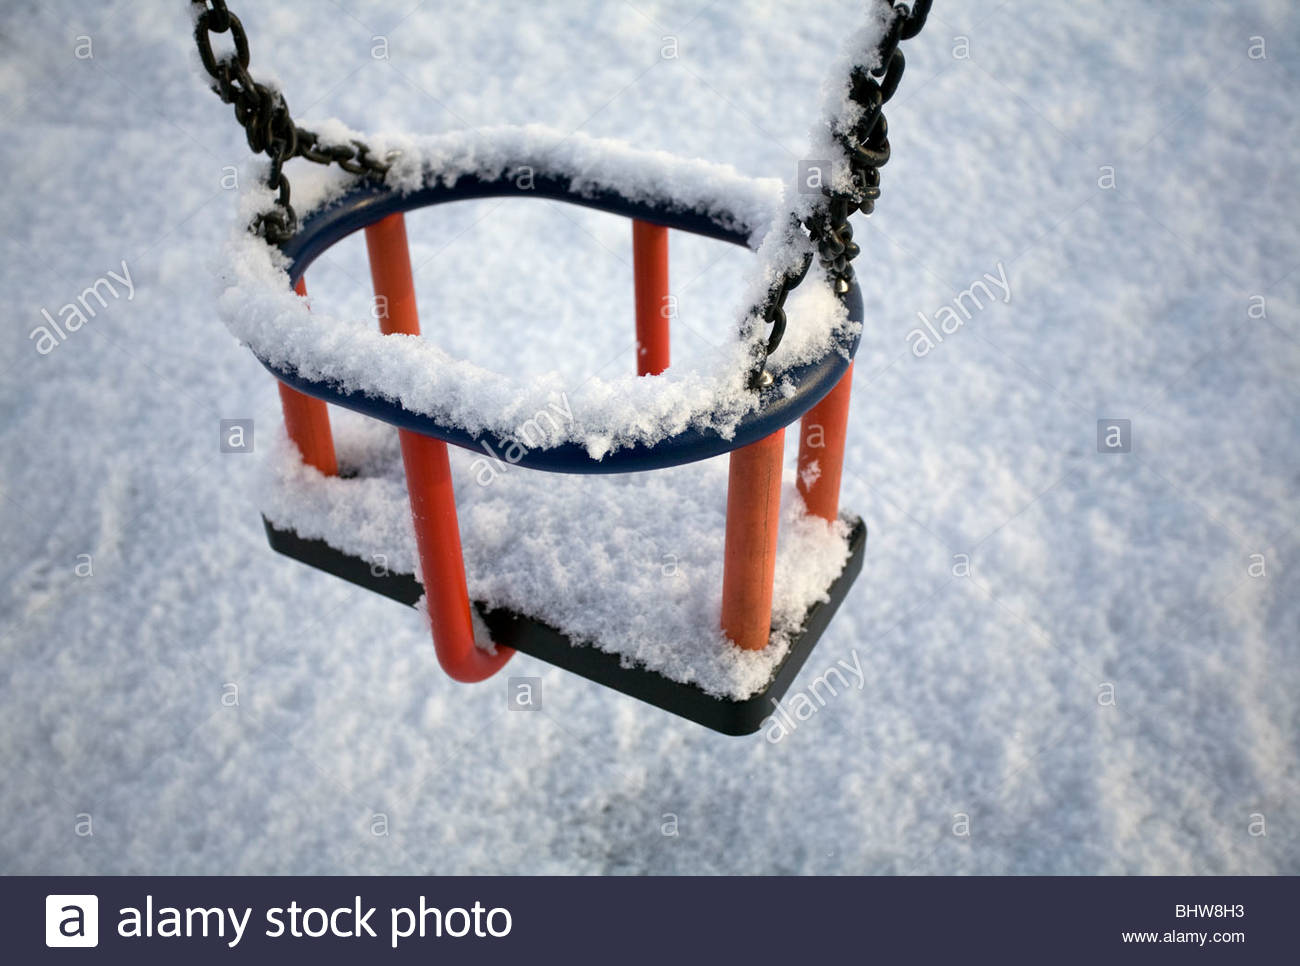 Snow covers a child's swing in a park. - Stock Image